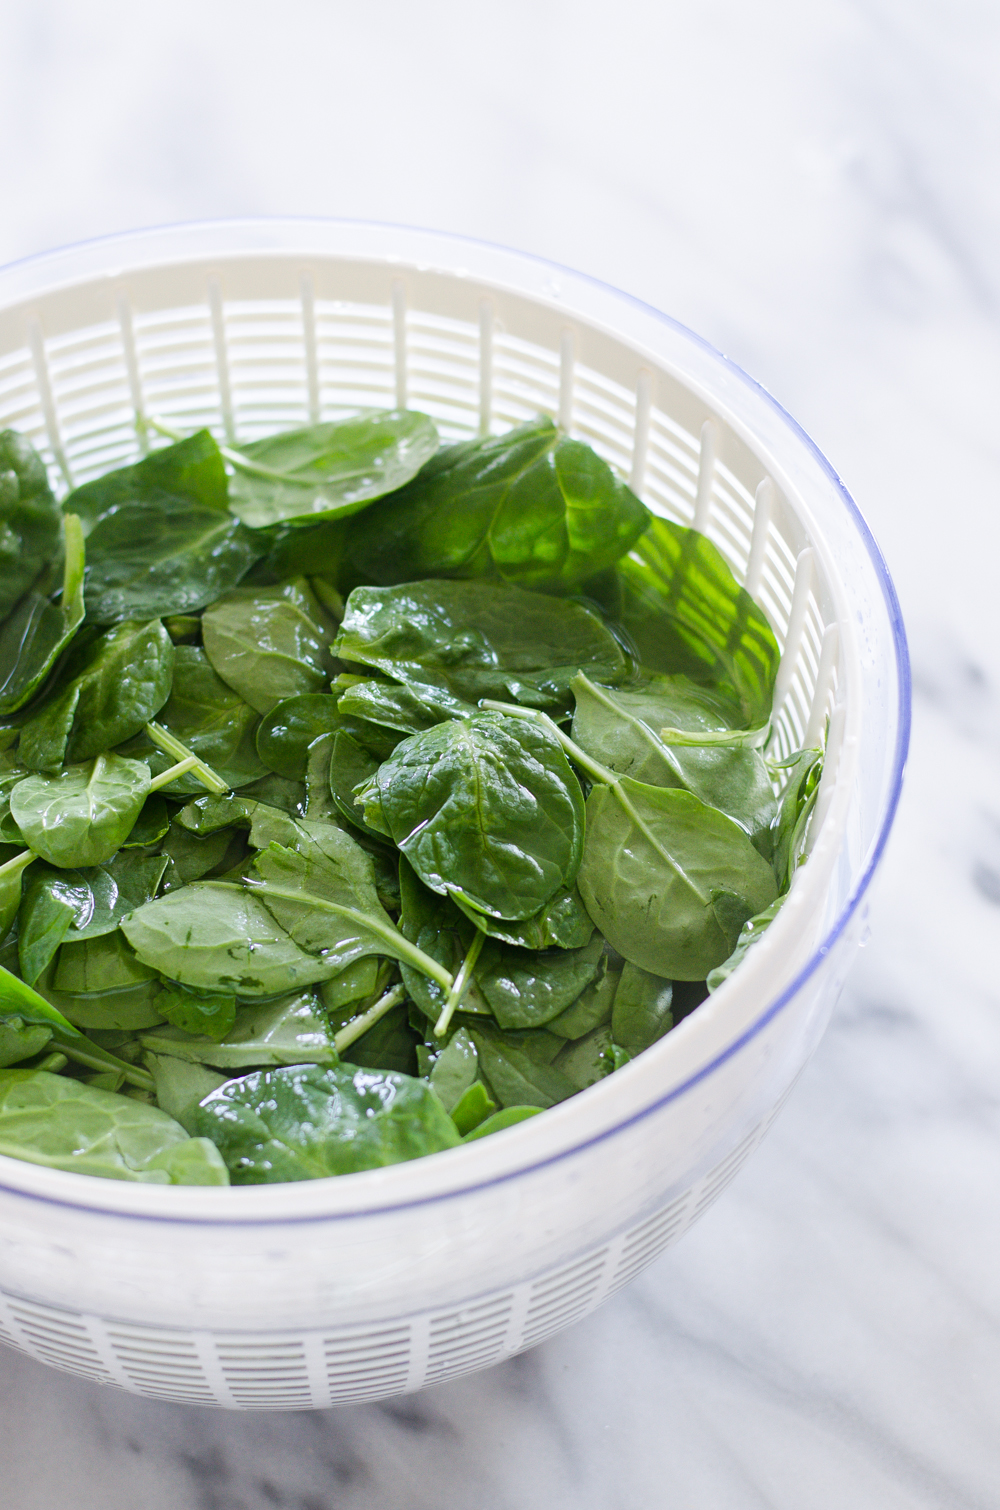 Eat Your Greens- Spinach - Buttered Side Up